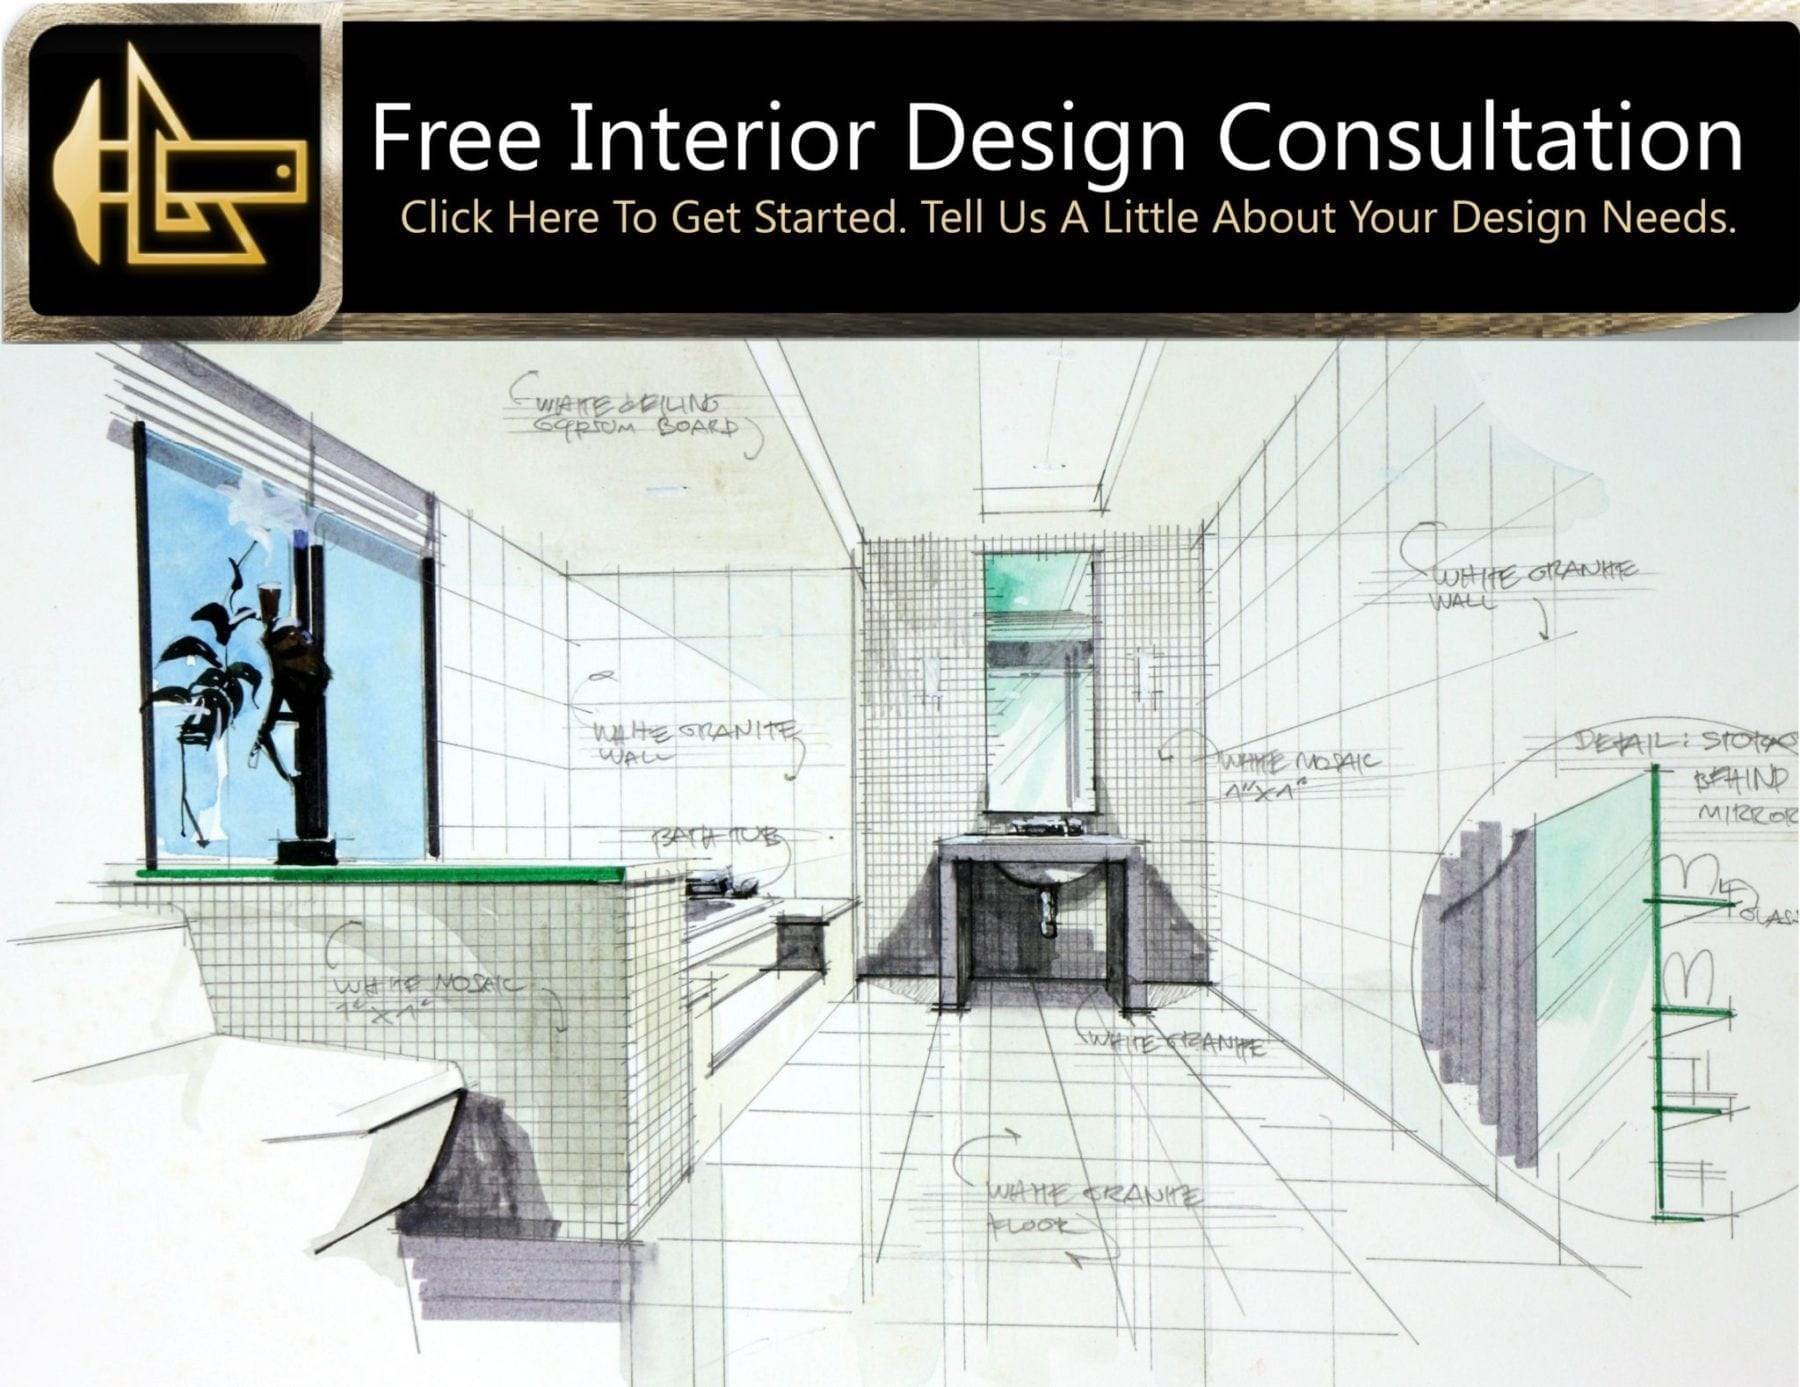 Start Your Home Improvement Project with a Complimentary Design Consultation